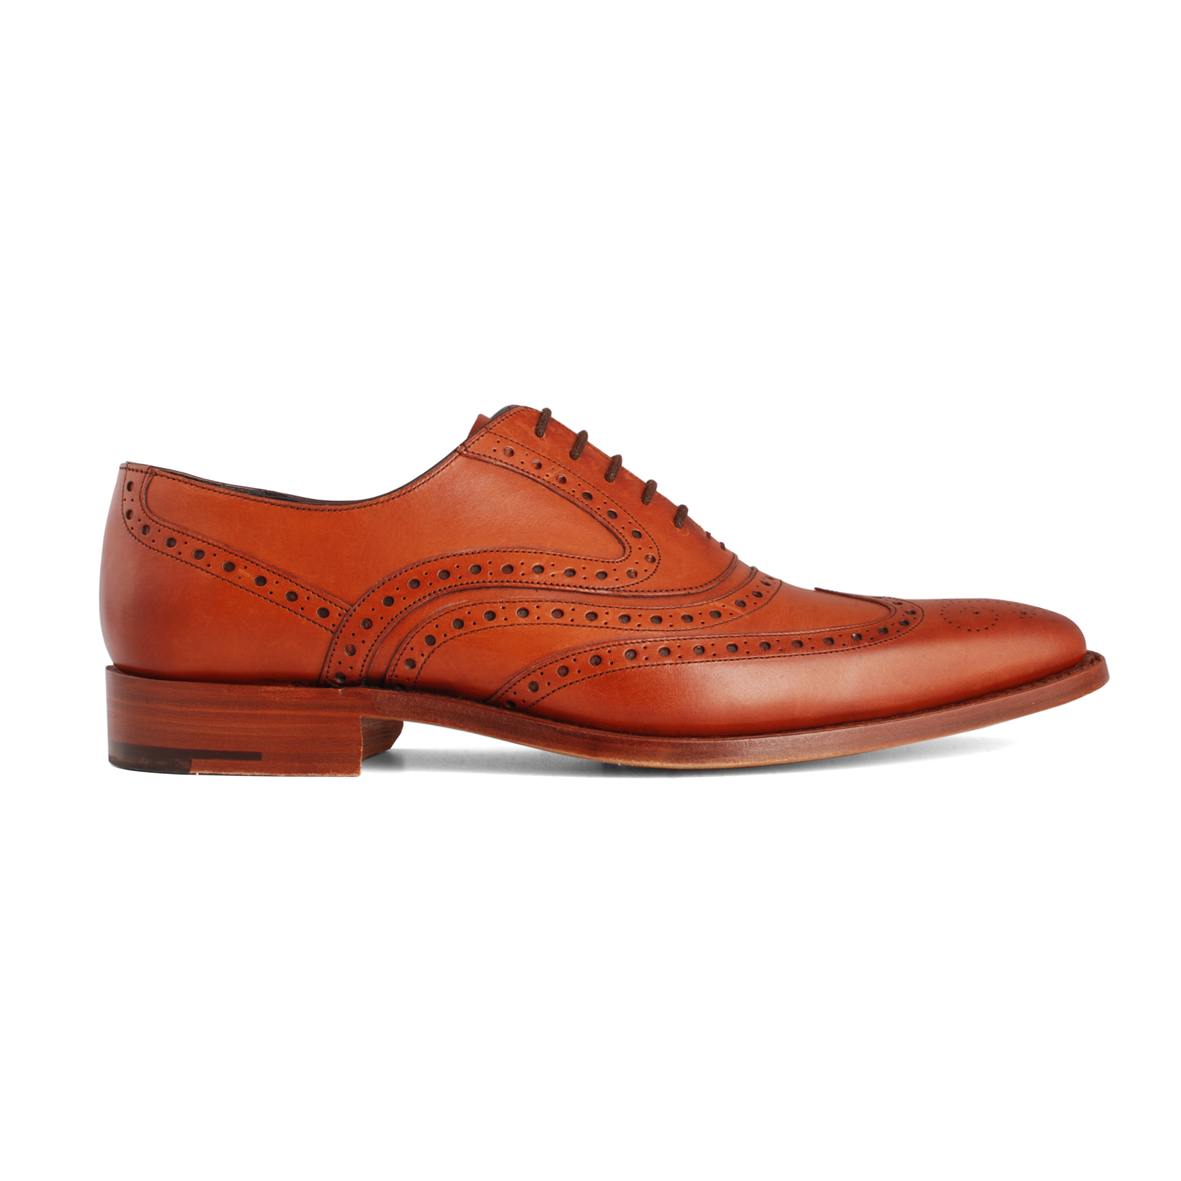 Barker McClean Rosewood shoes